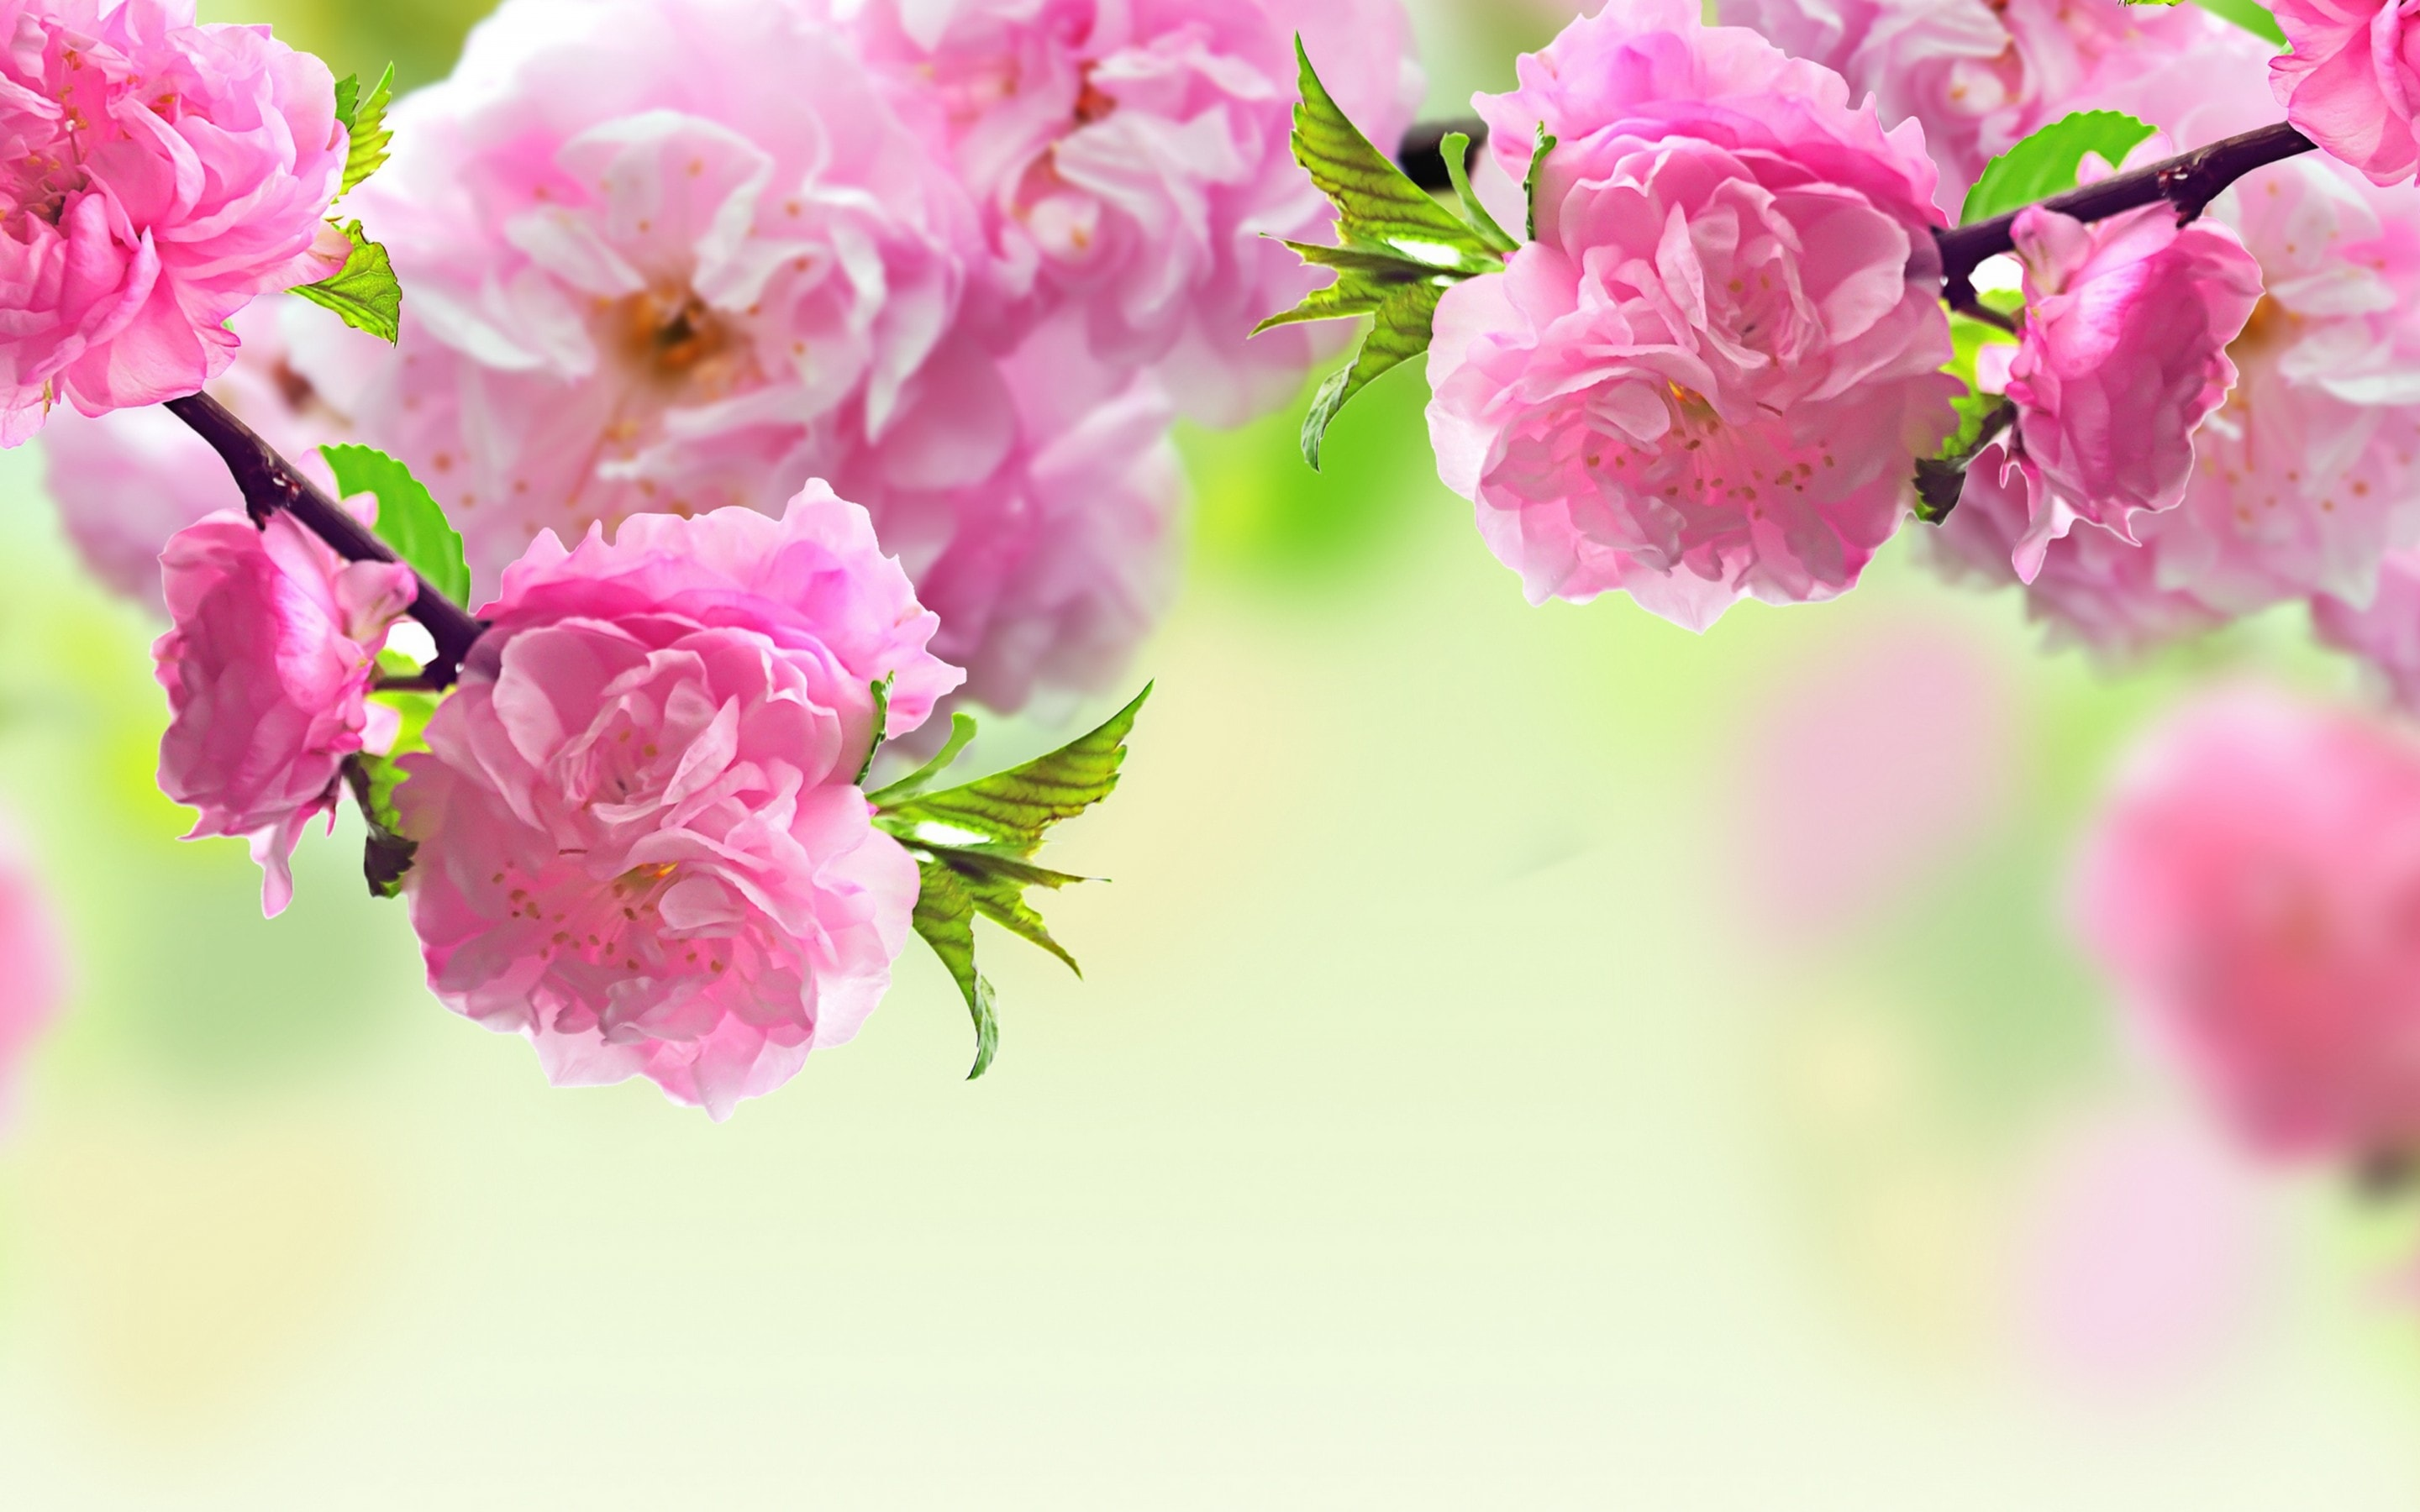 sakura flower hd desktop wallpapers | 7wallpapers